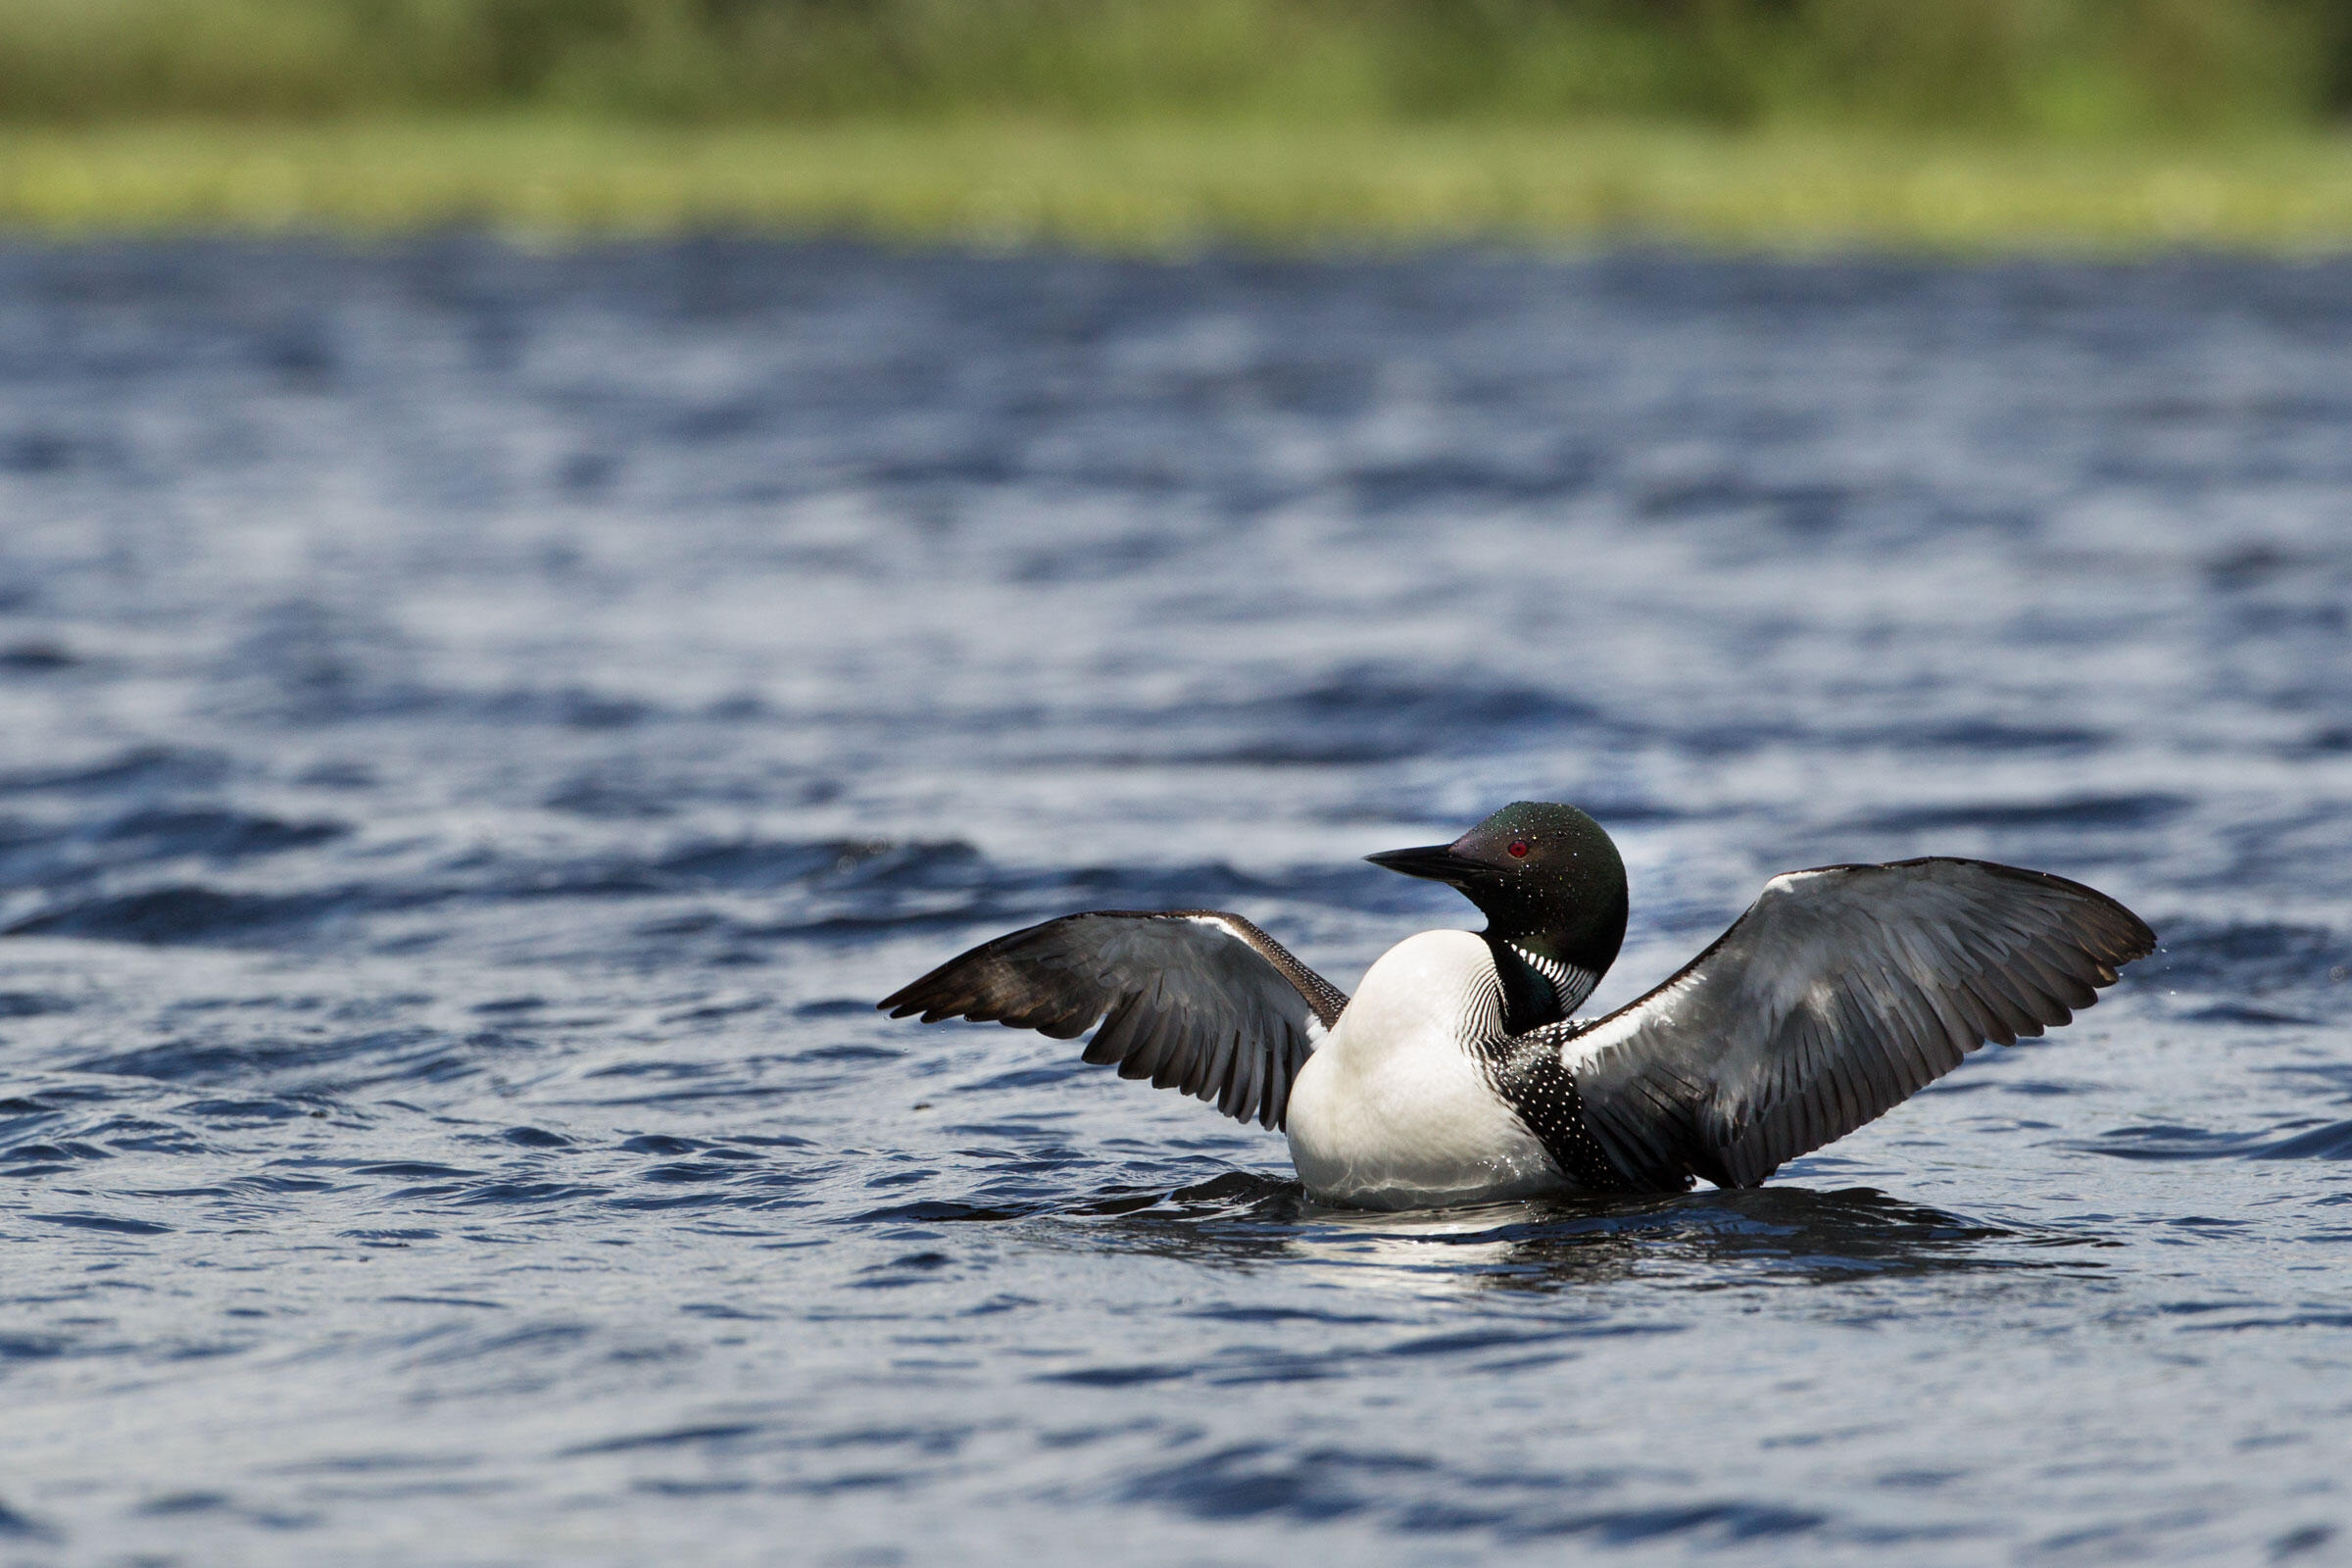 Loons4_JF15. A freed loon returns to the water. Loons come on shore only to nest. They can dive 180 feet and hold their breath for three minutes or more when chasing fish. Photograph by Connor Stefanison